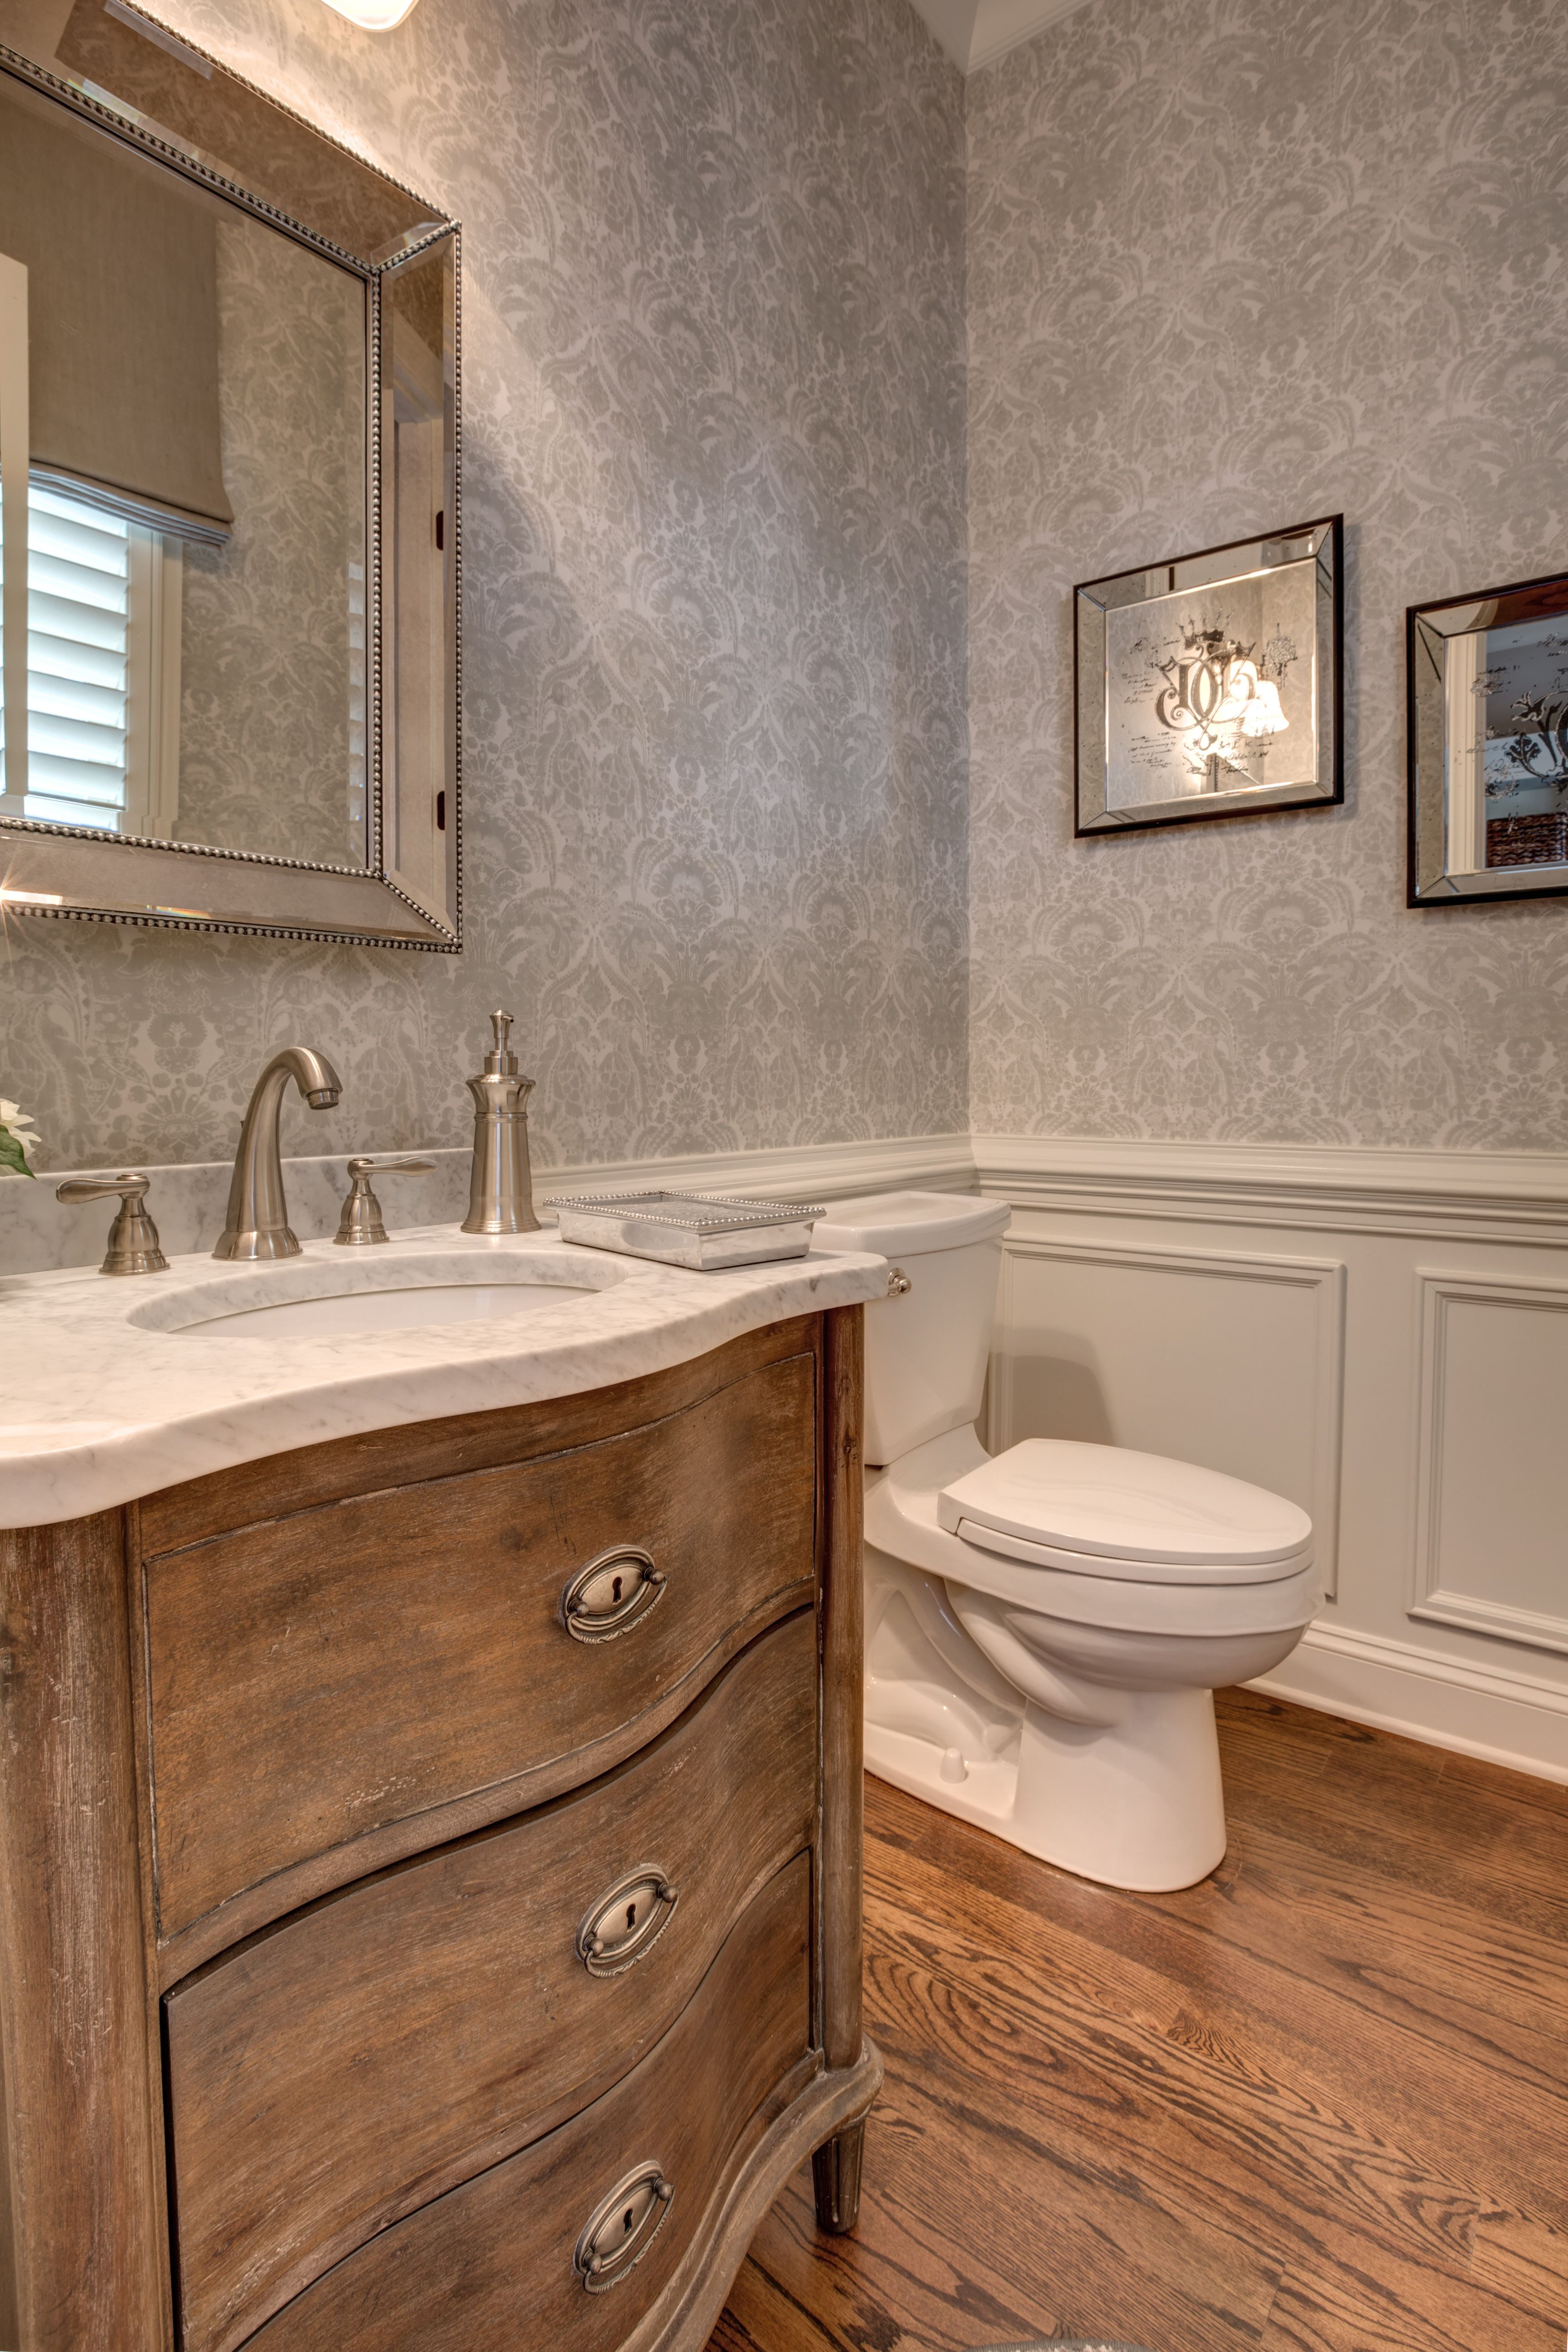 Guest bath london wall covering restoration hardware vanity restoration hardware mirror john